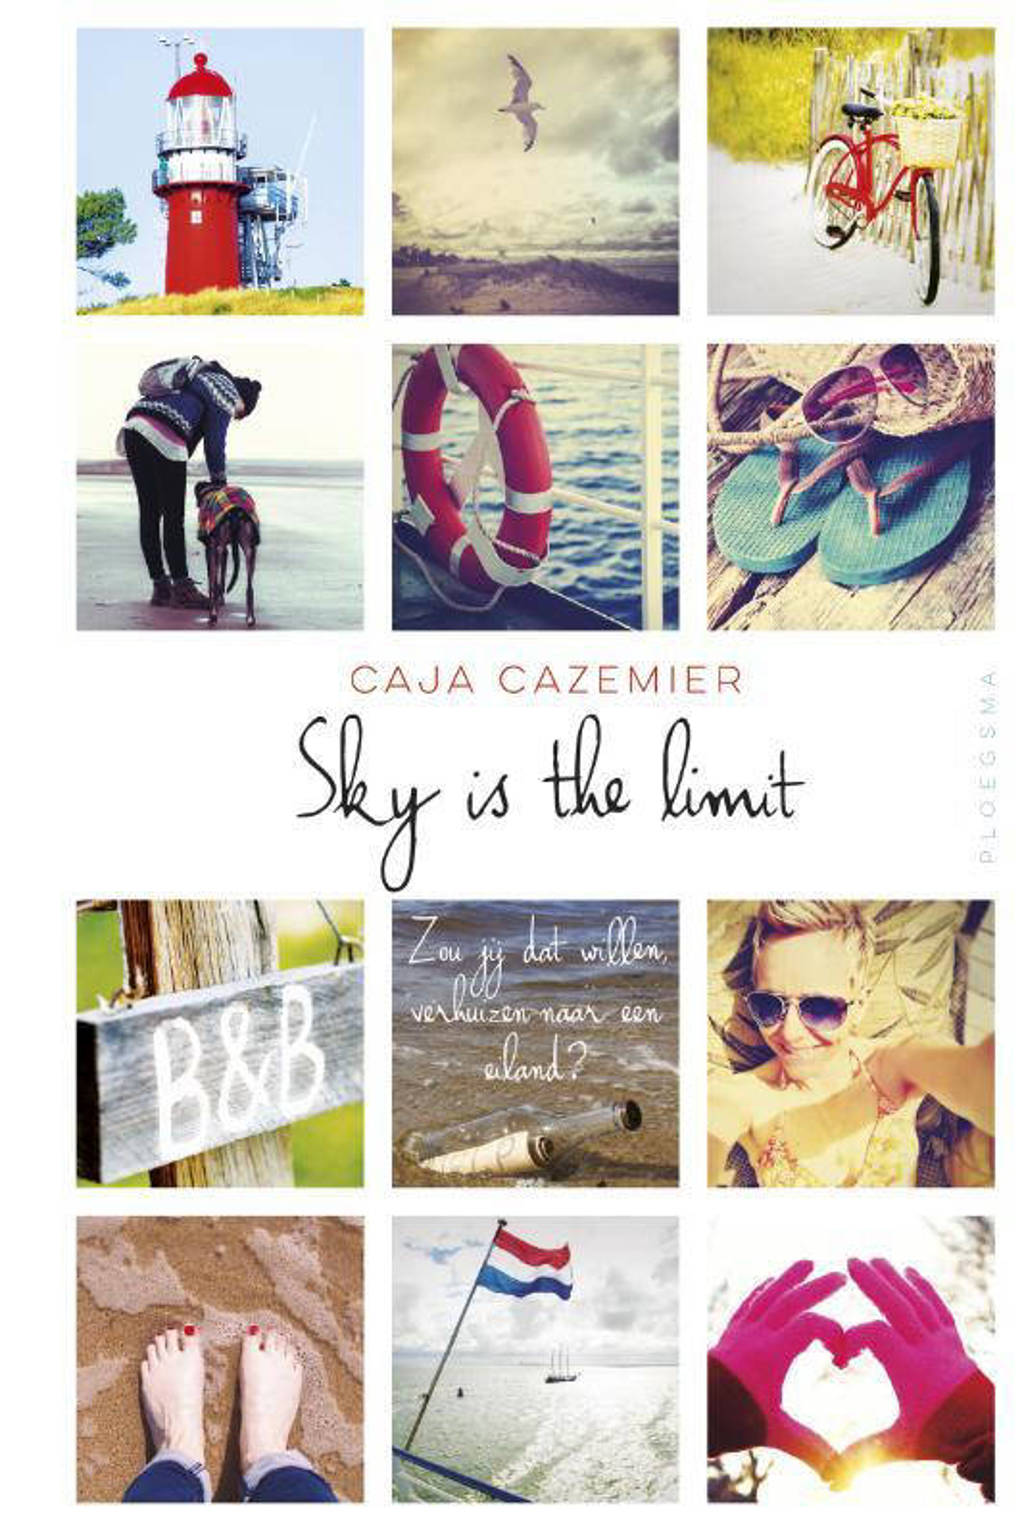 Sky is the limit - Caja Cazemier